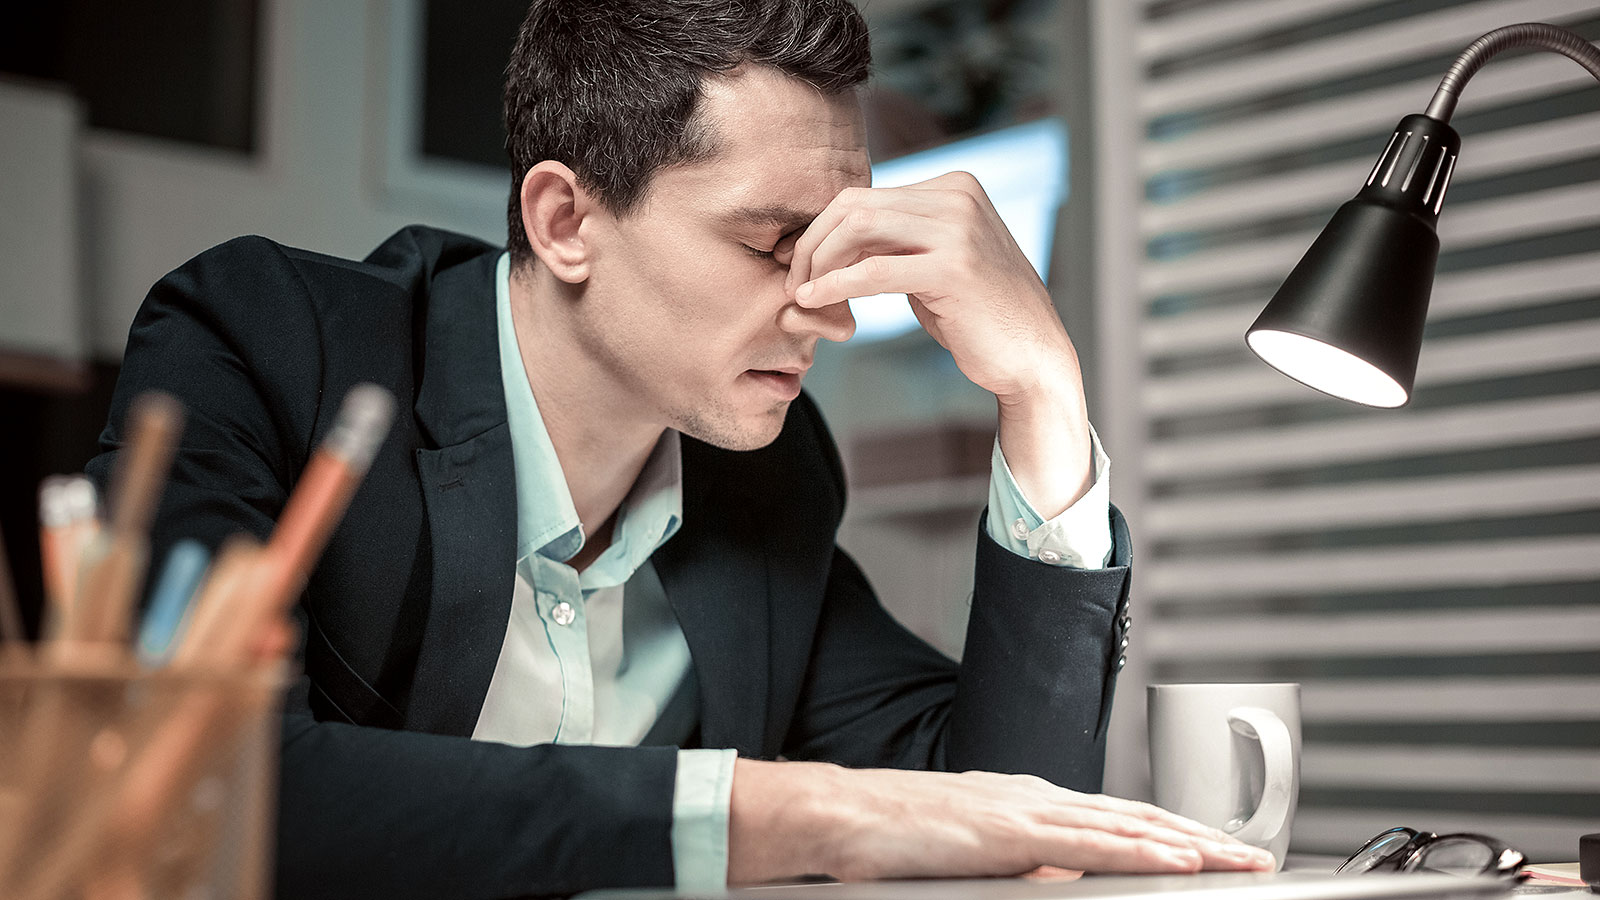 9 sad reasons people stay in jobs they don't like (even though they always talk about leaving)